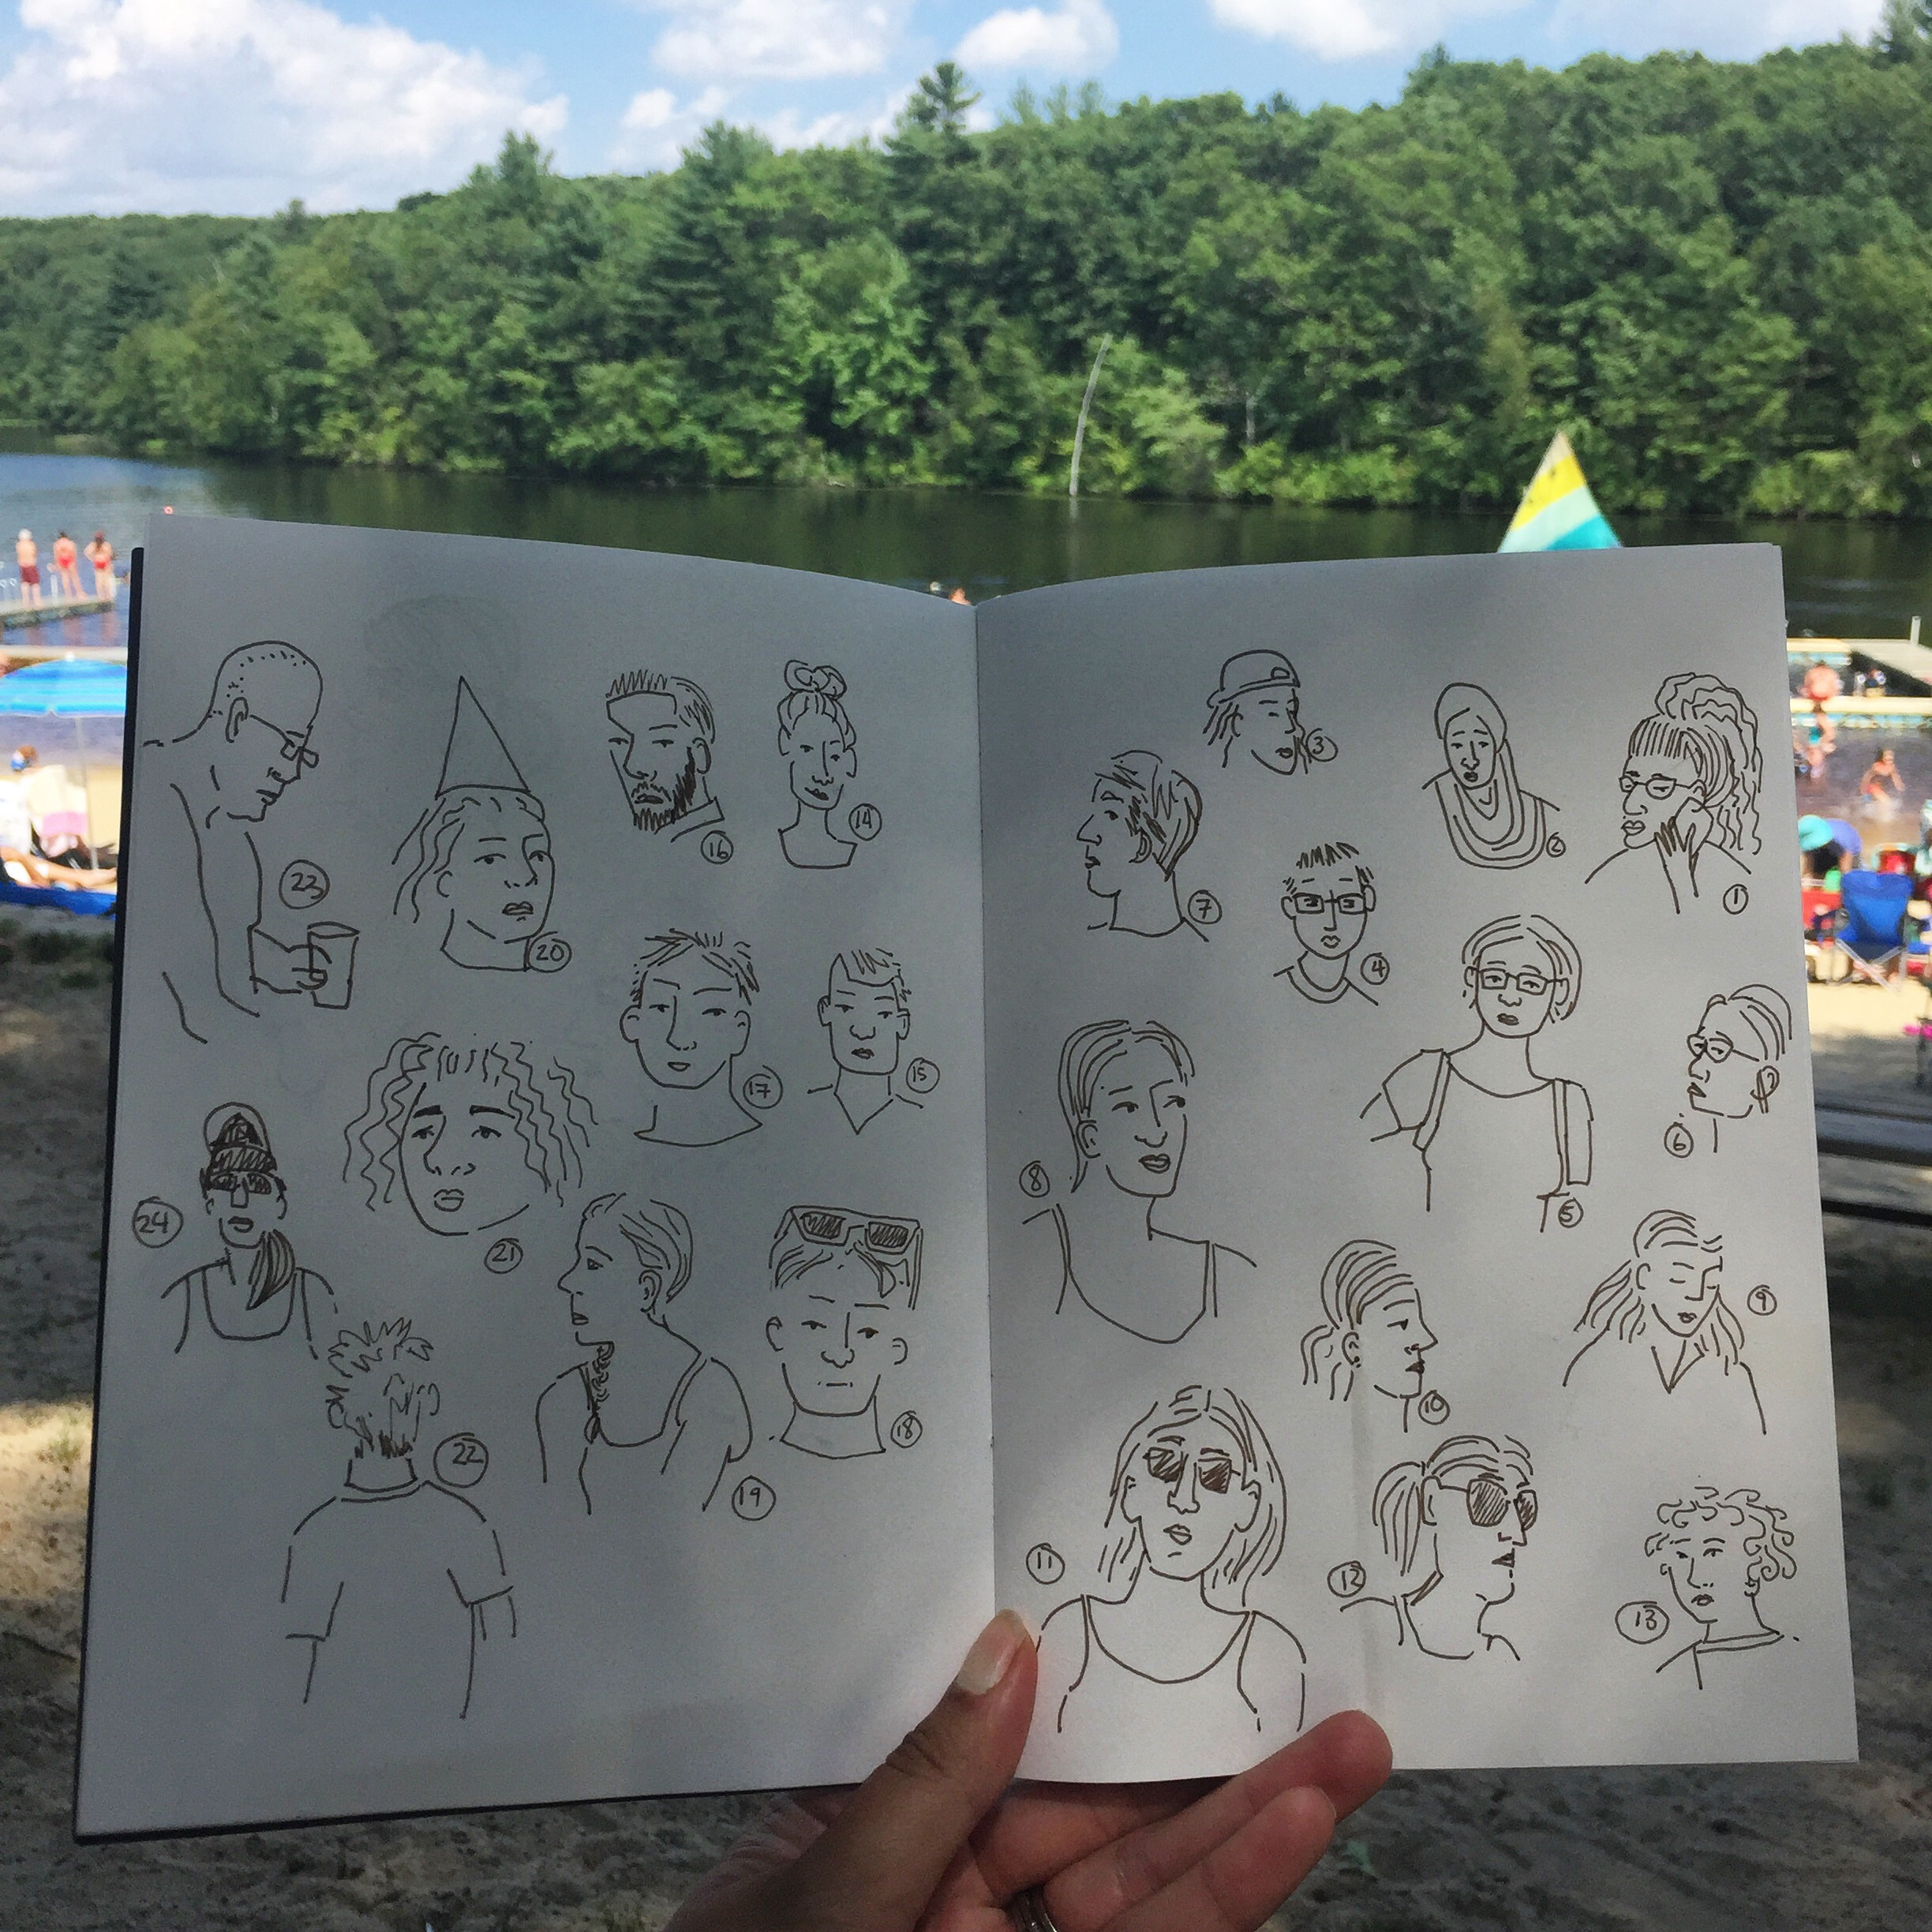 Sketching people at the beach.